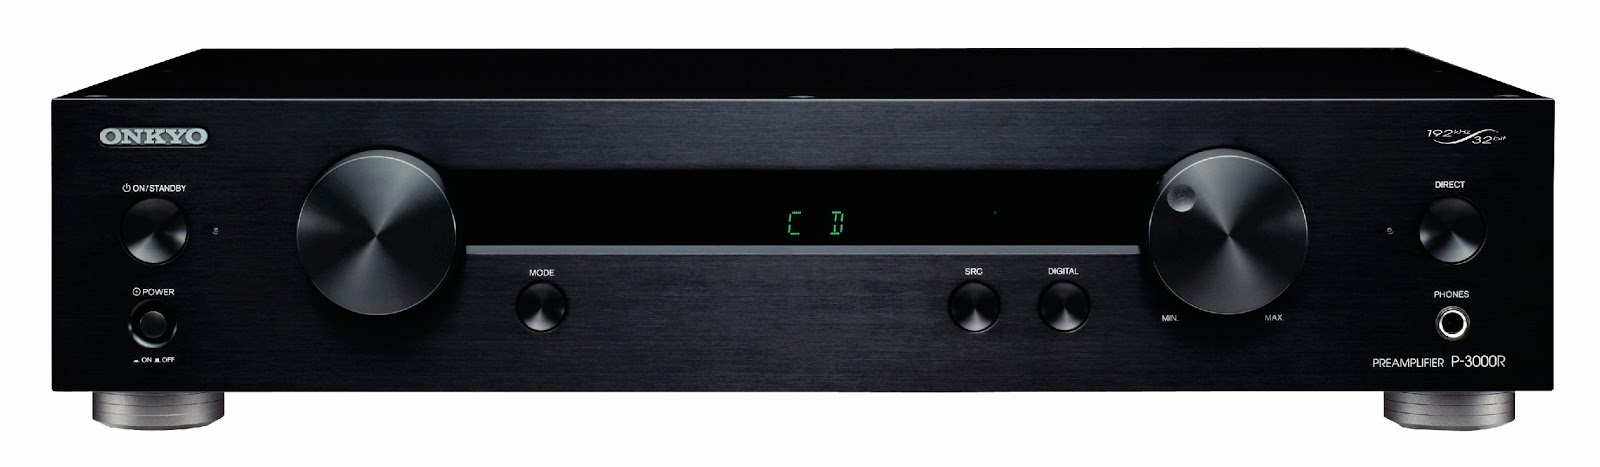 audiophile musings onkyo p 3000r preamp review. Black Bedroom Furniture Sets. Home Design Ideas